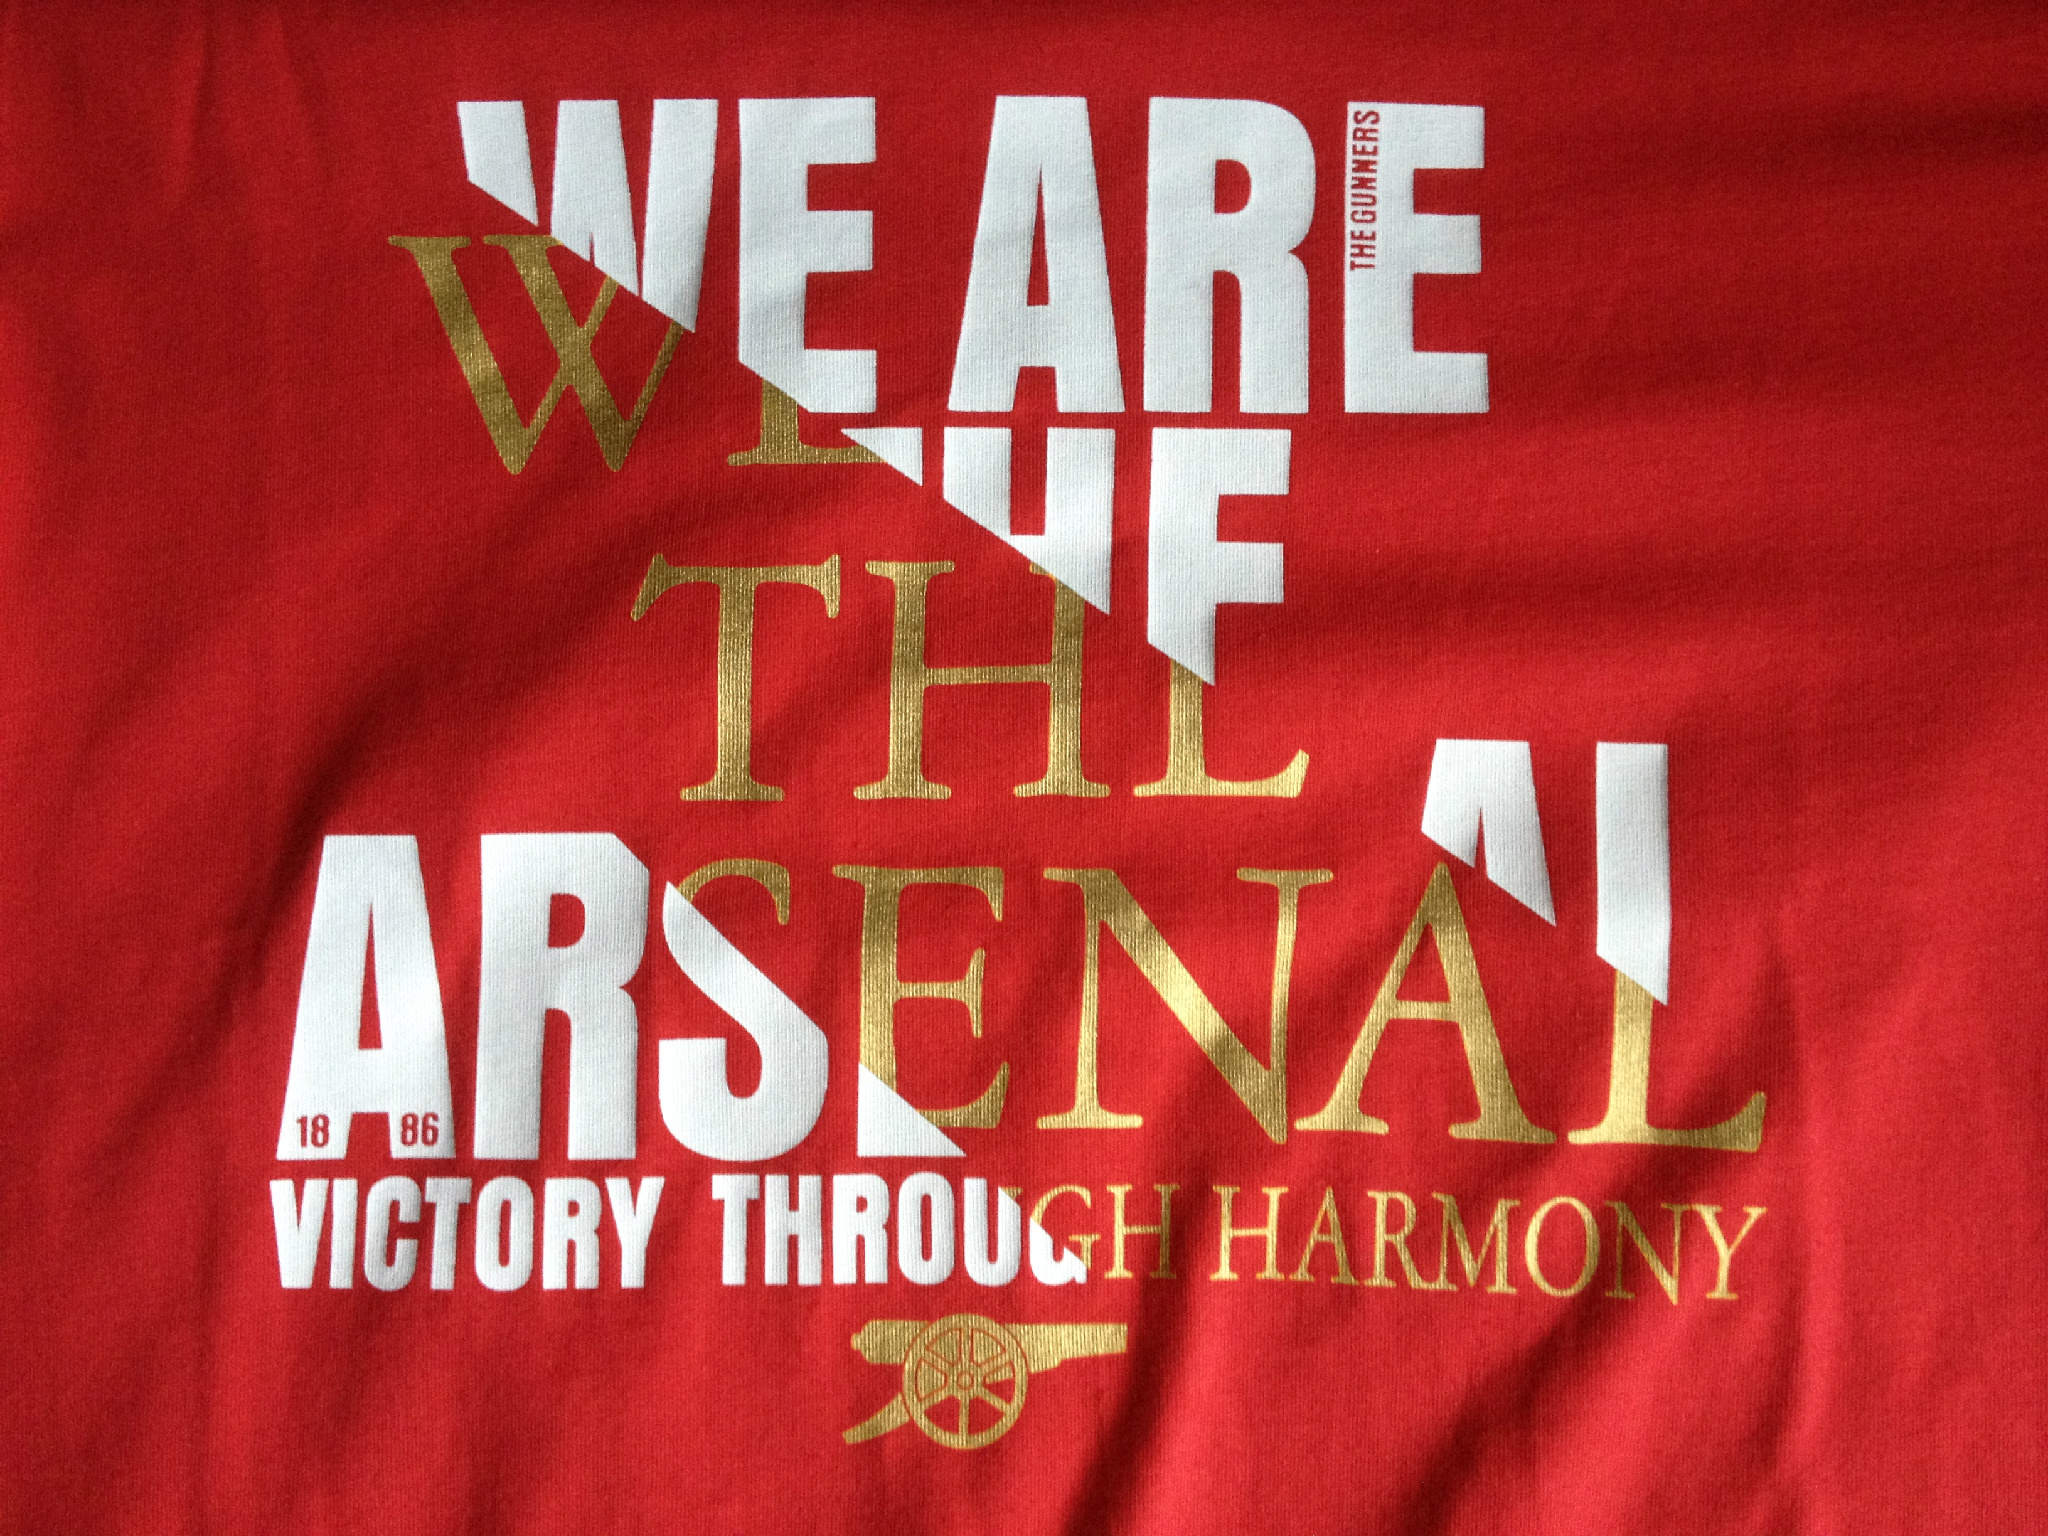 Victory Through Harmony. I'm clearly ready for the 2012/2013 season. #Arsenal http://t.co/Whurzye9